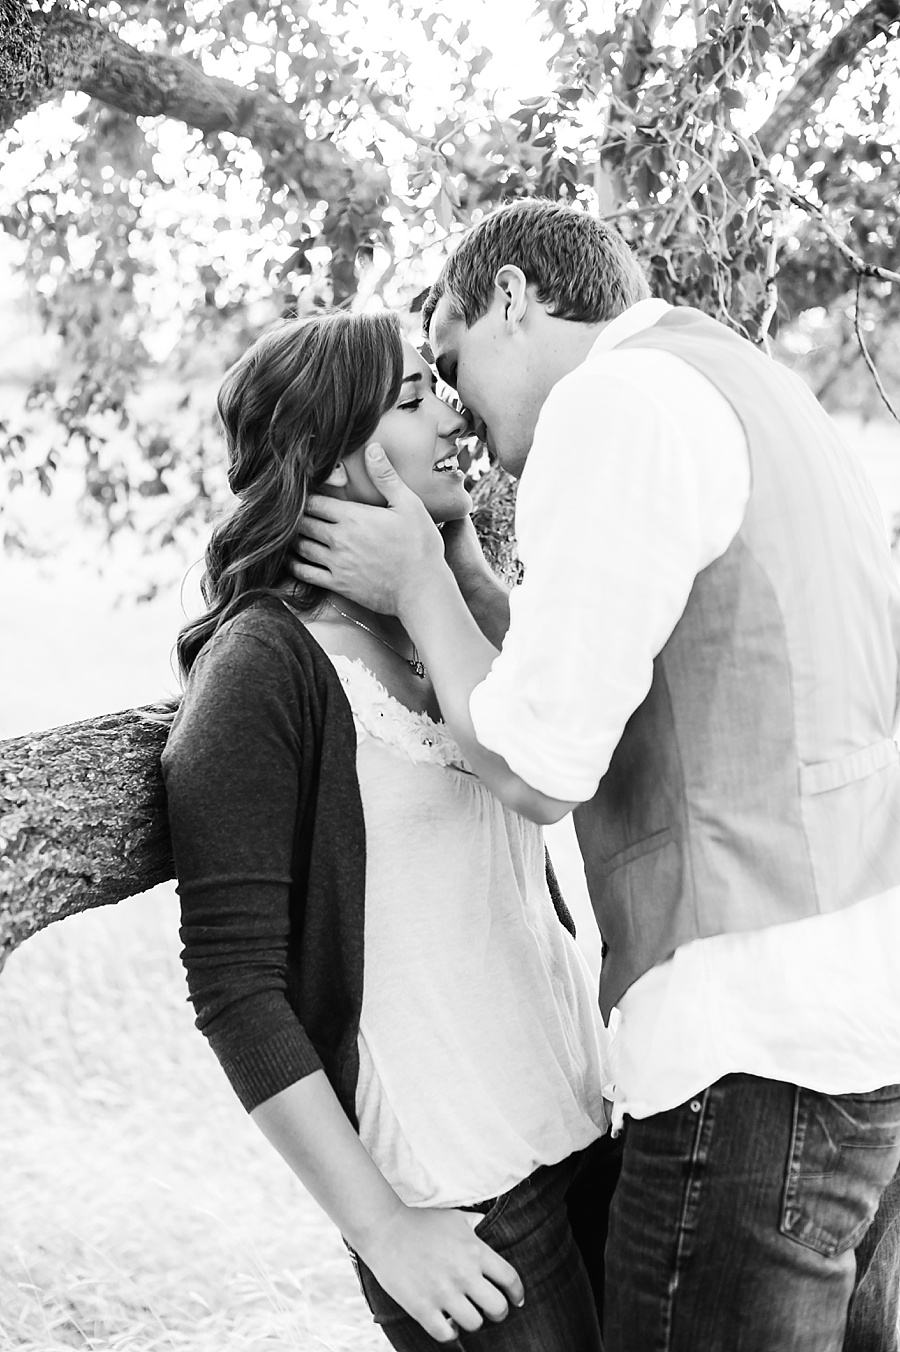 Salt Lake City Utah Engagement Photographer Ali Sumsion 023